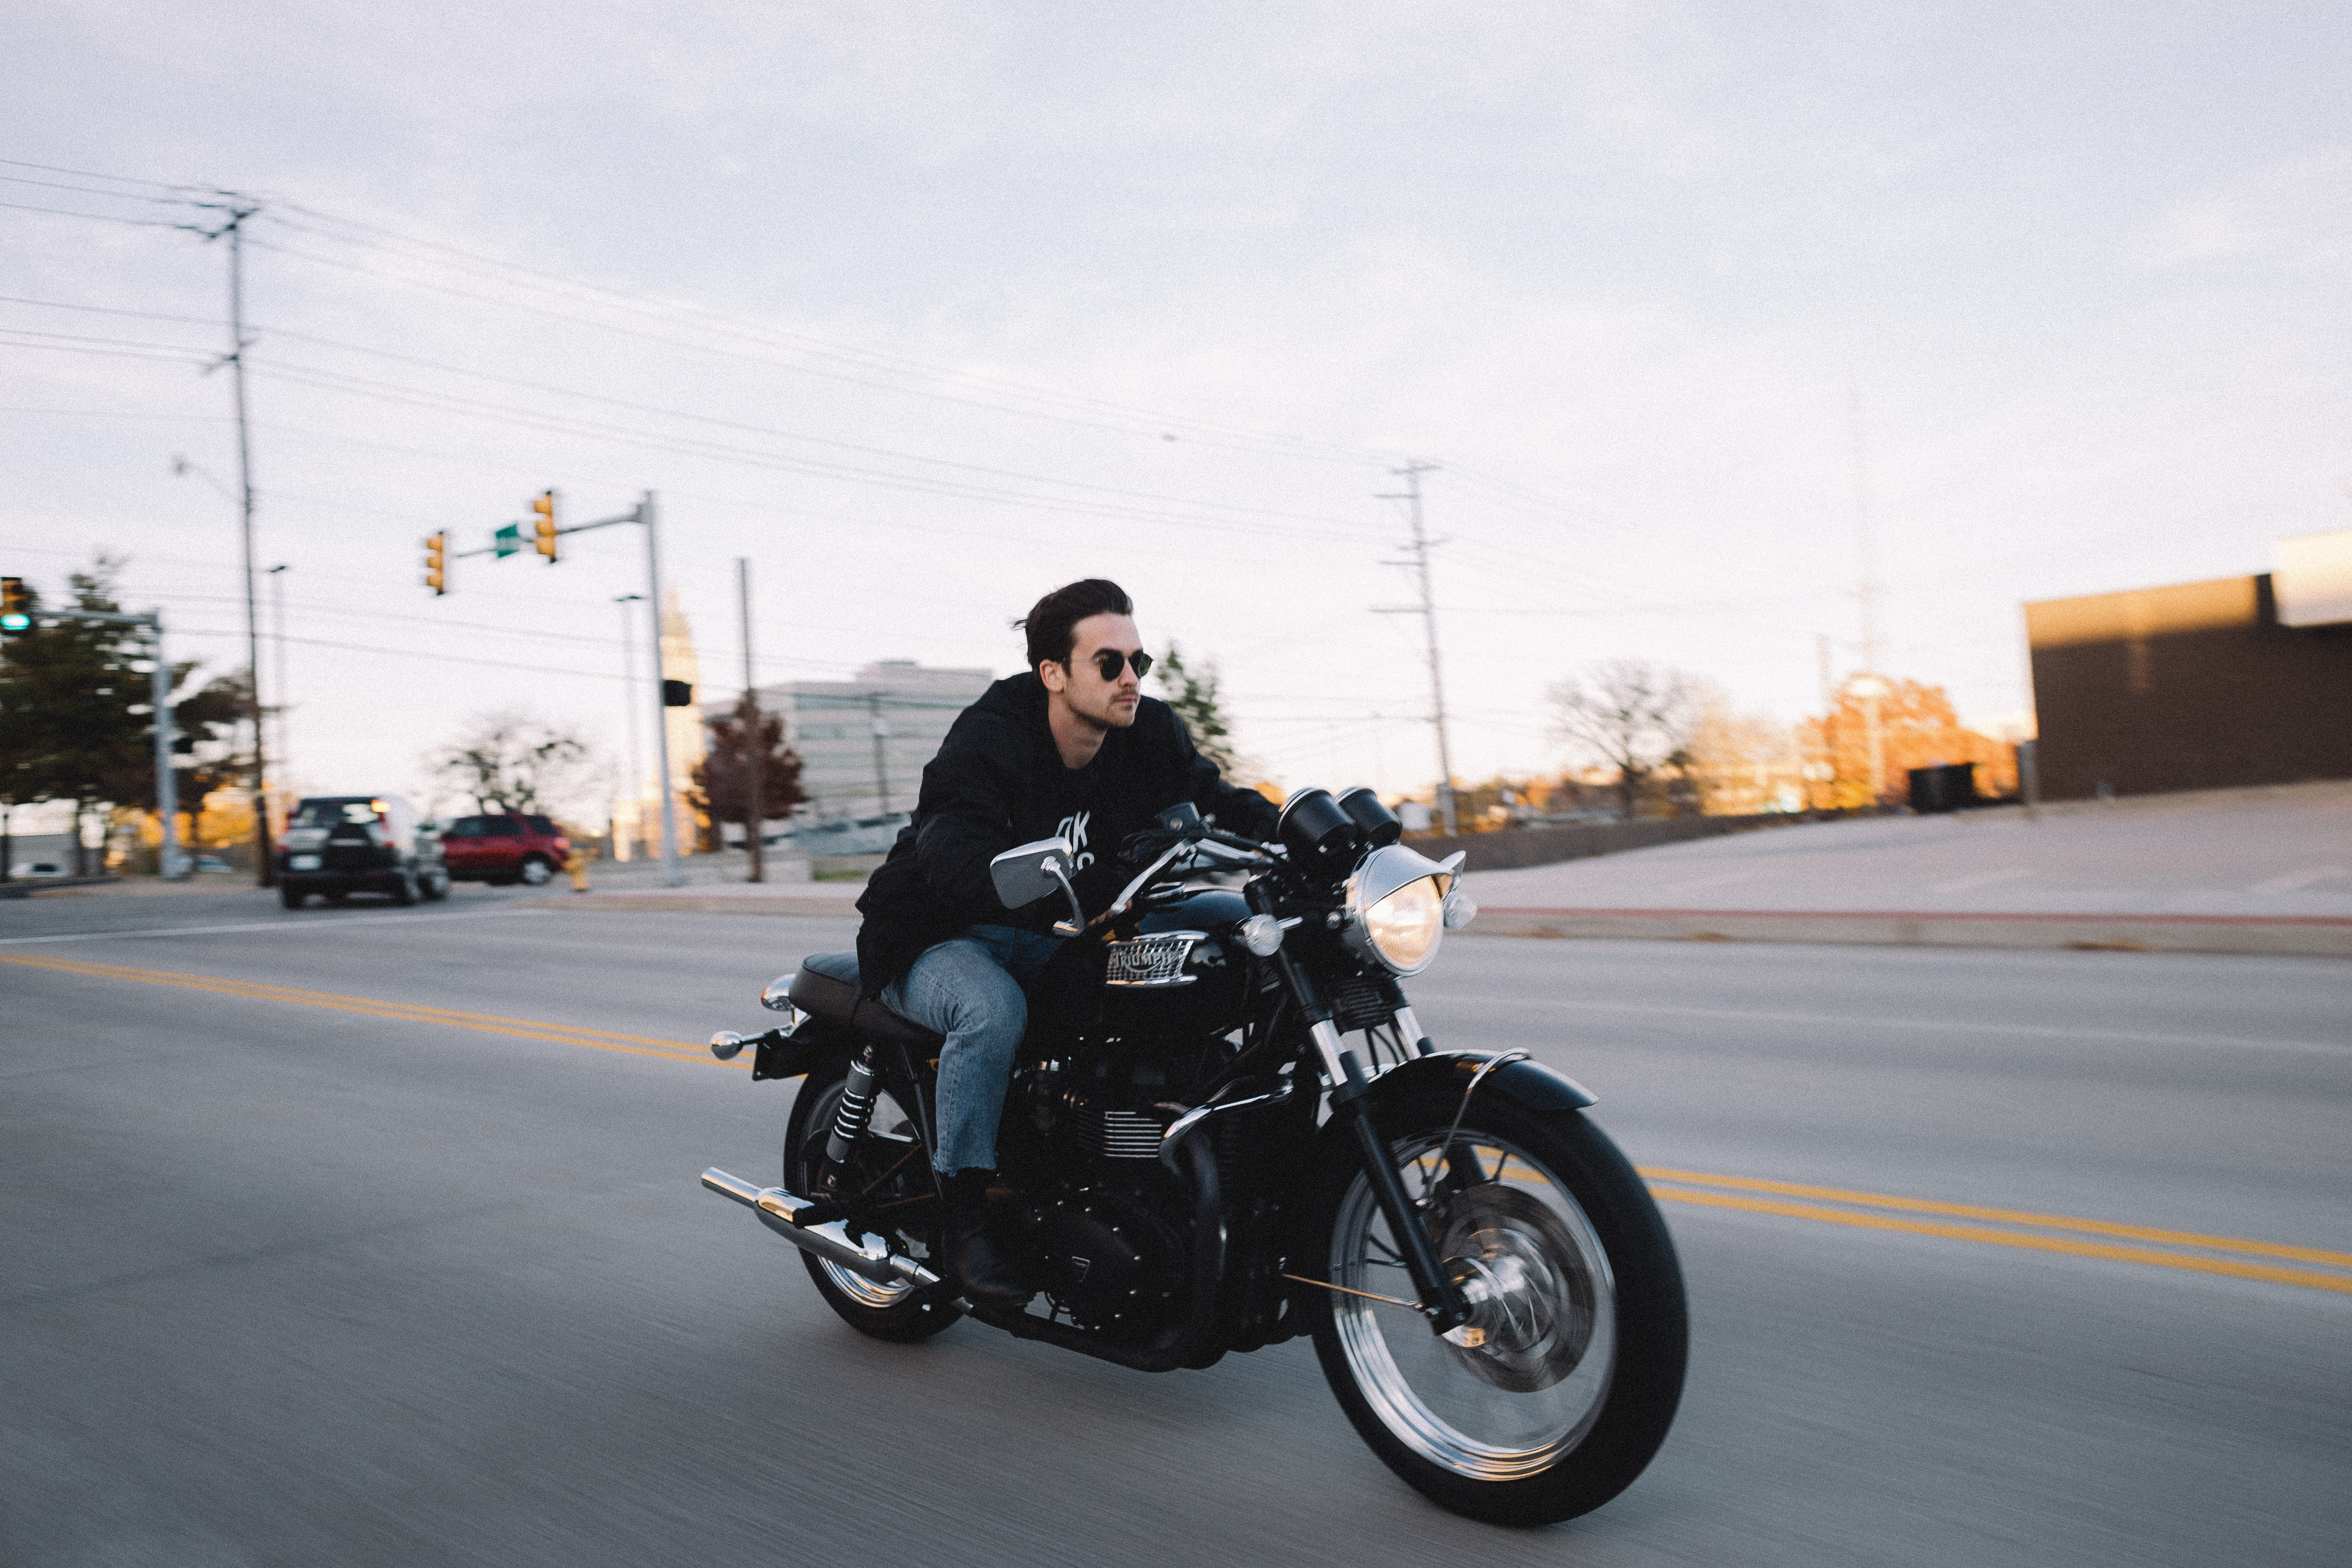 man riding cruiser motorcycle at the road during day